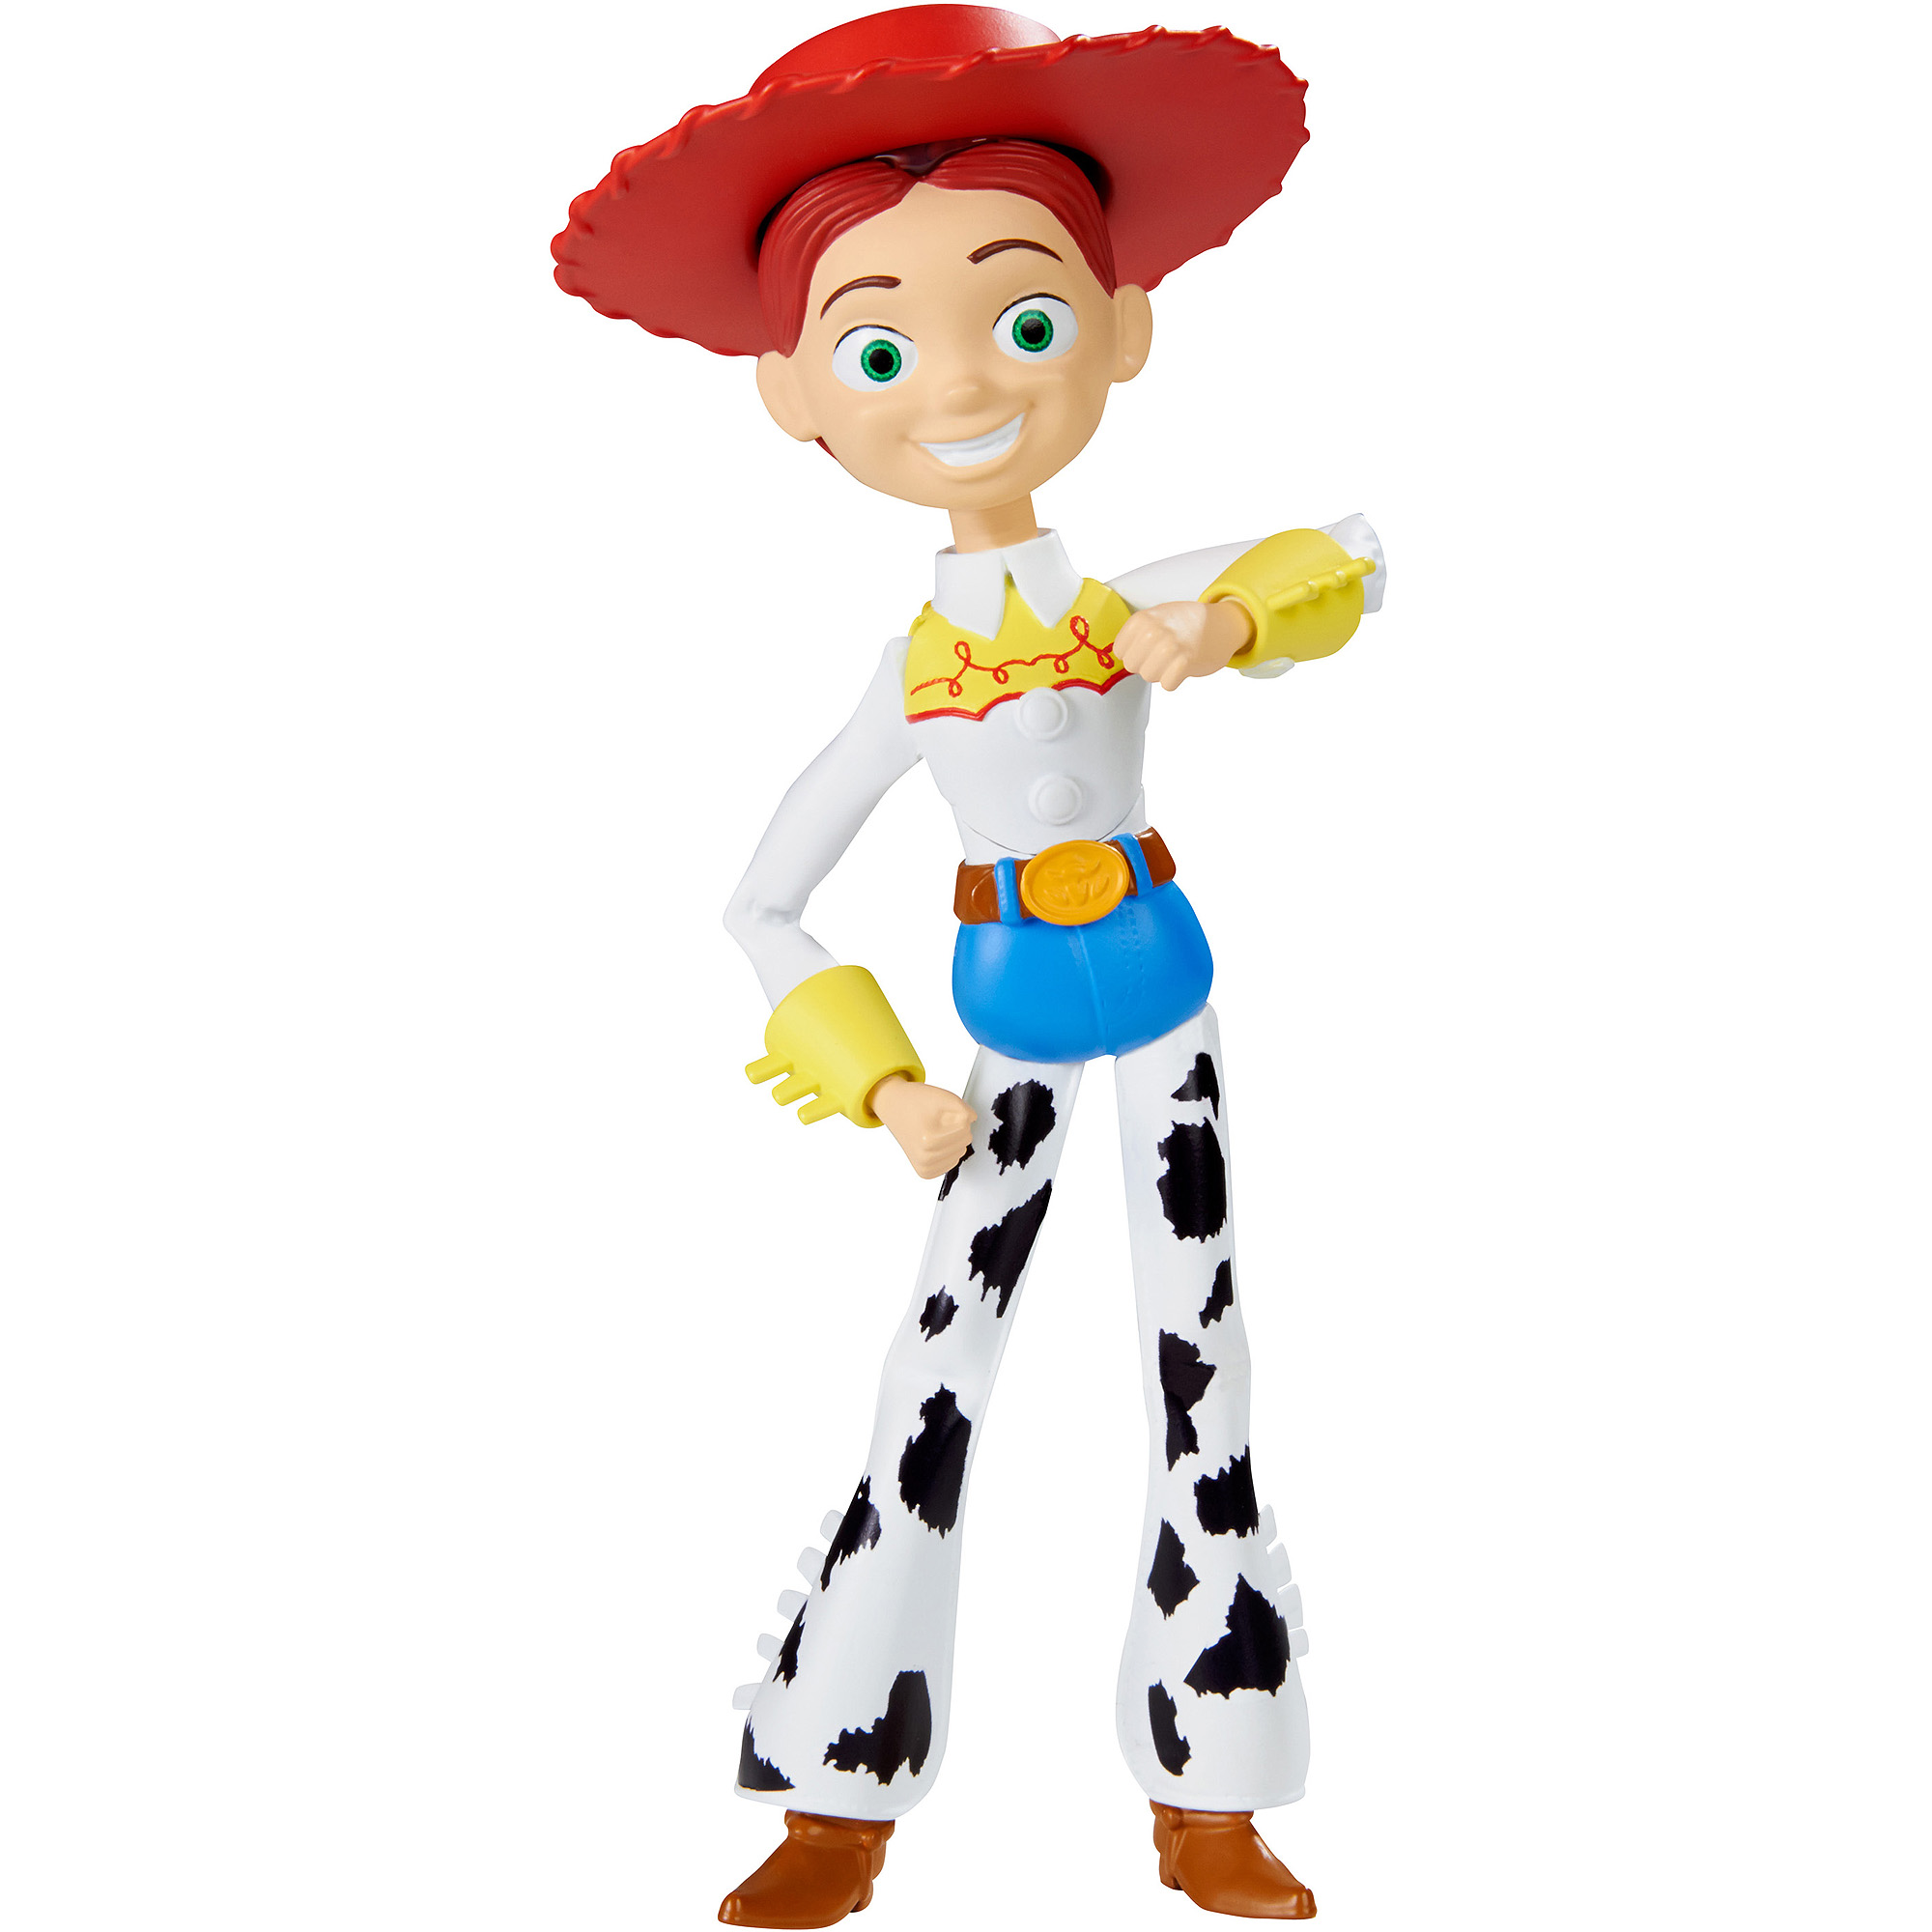 Jessie from toy story bedding - Jessie From Toy Story Bedding 23